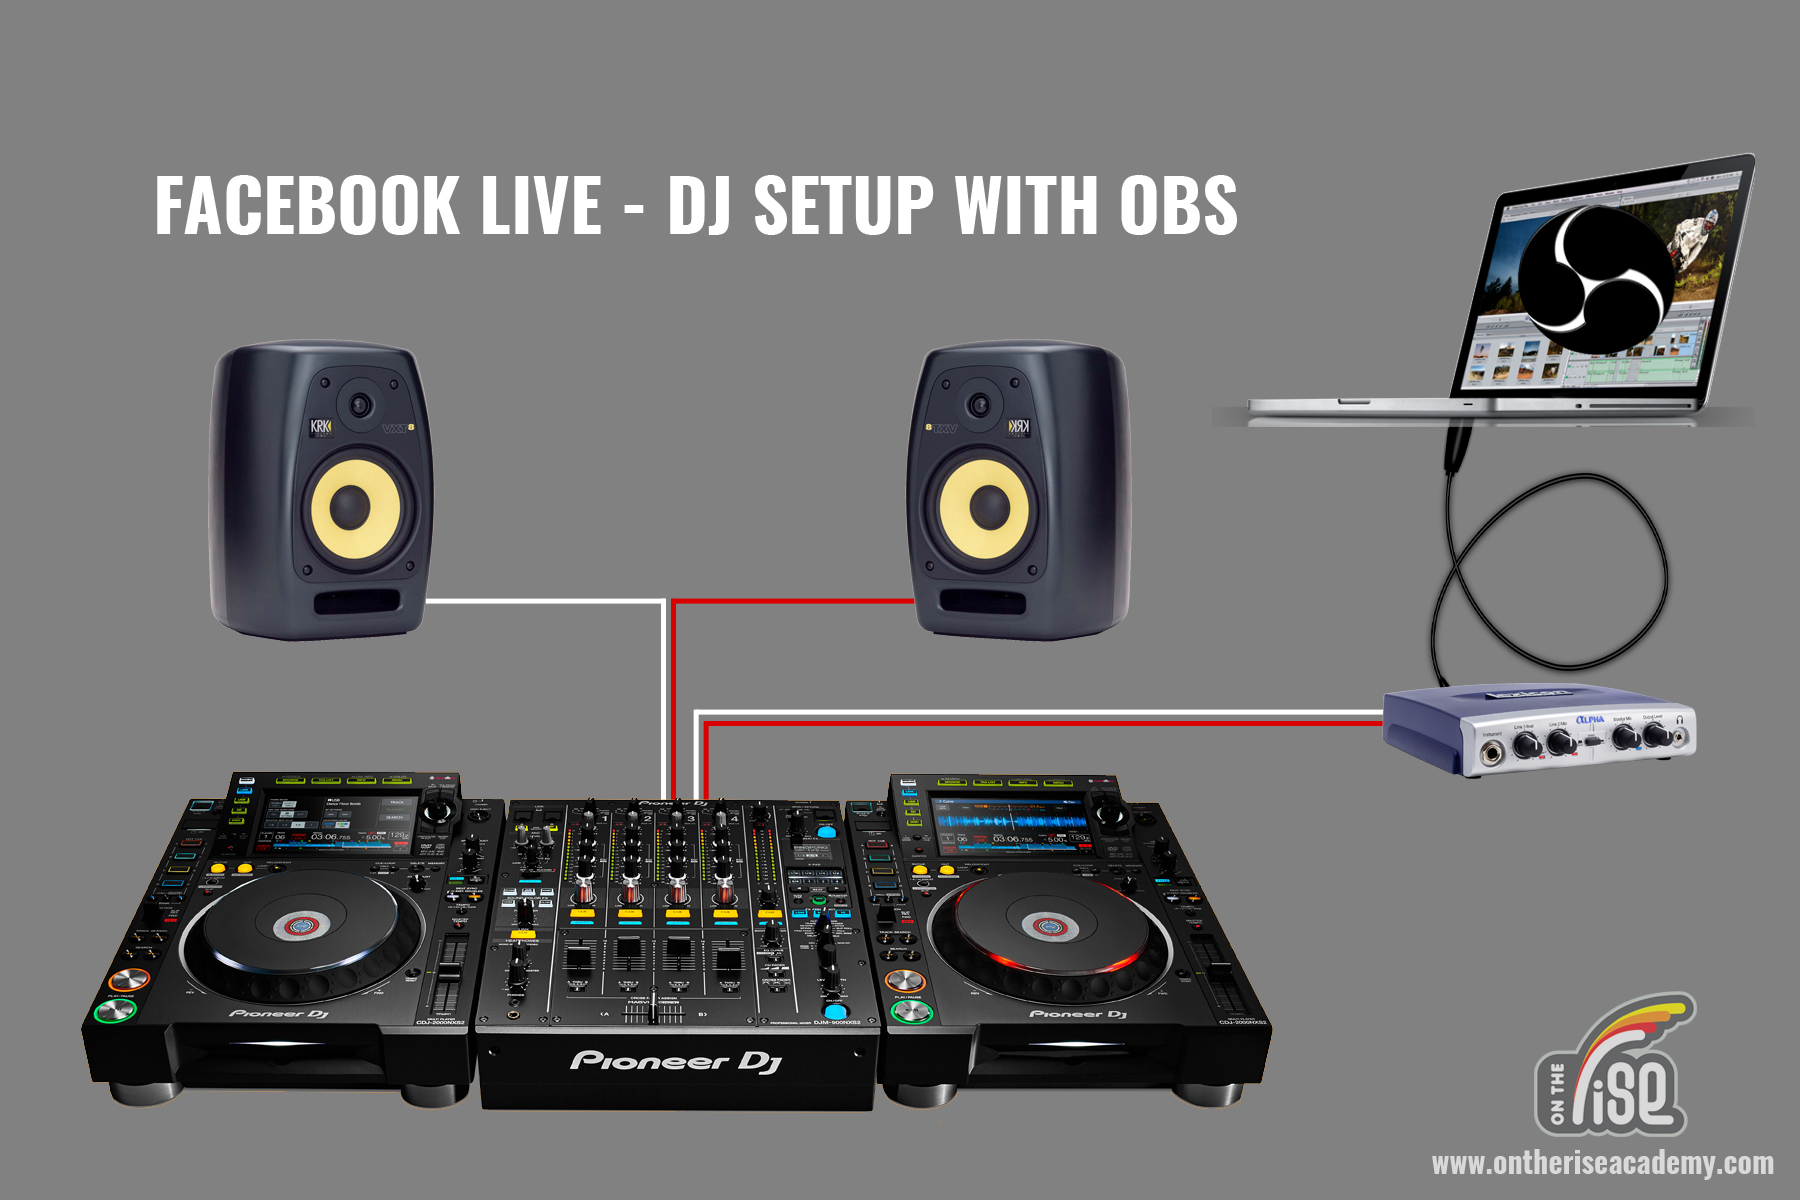 2017 Guide to Facebook Live DJing - On The Rise DJ Academy